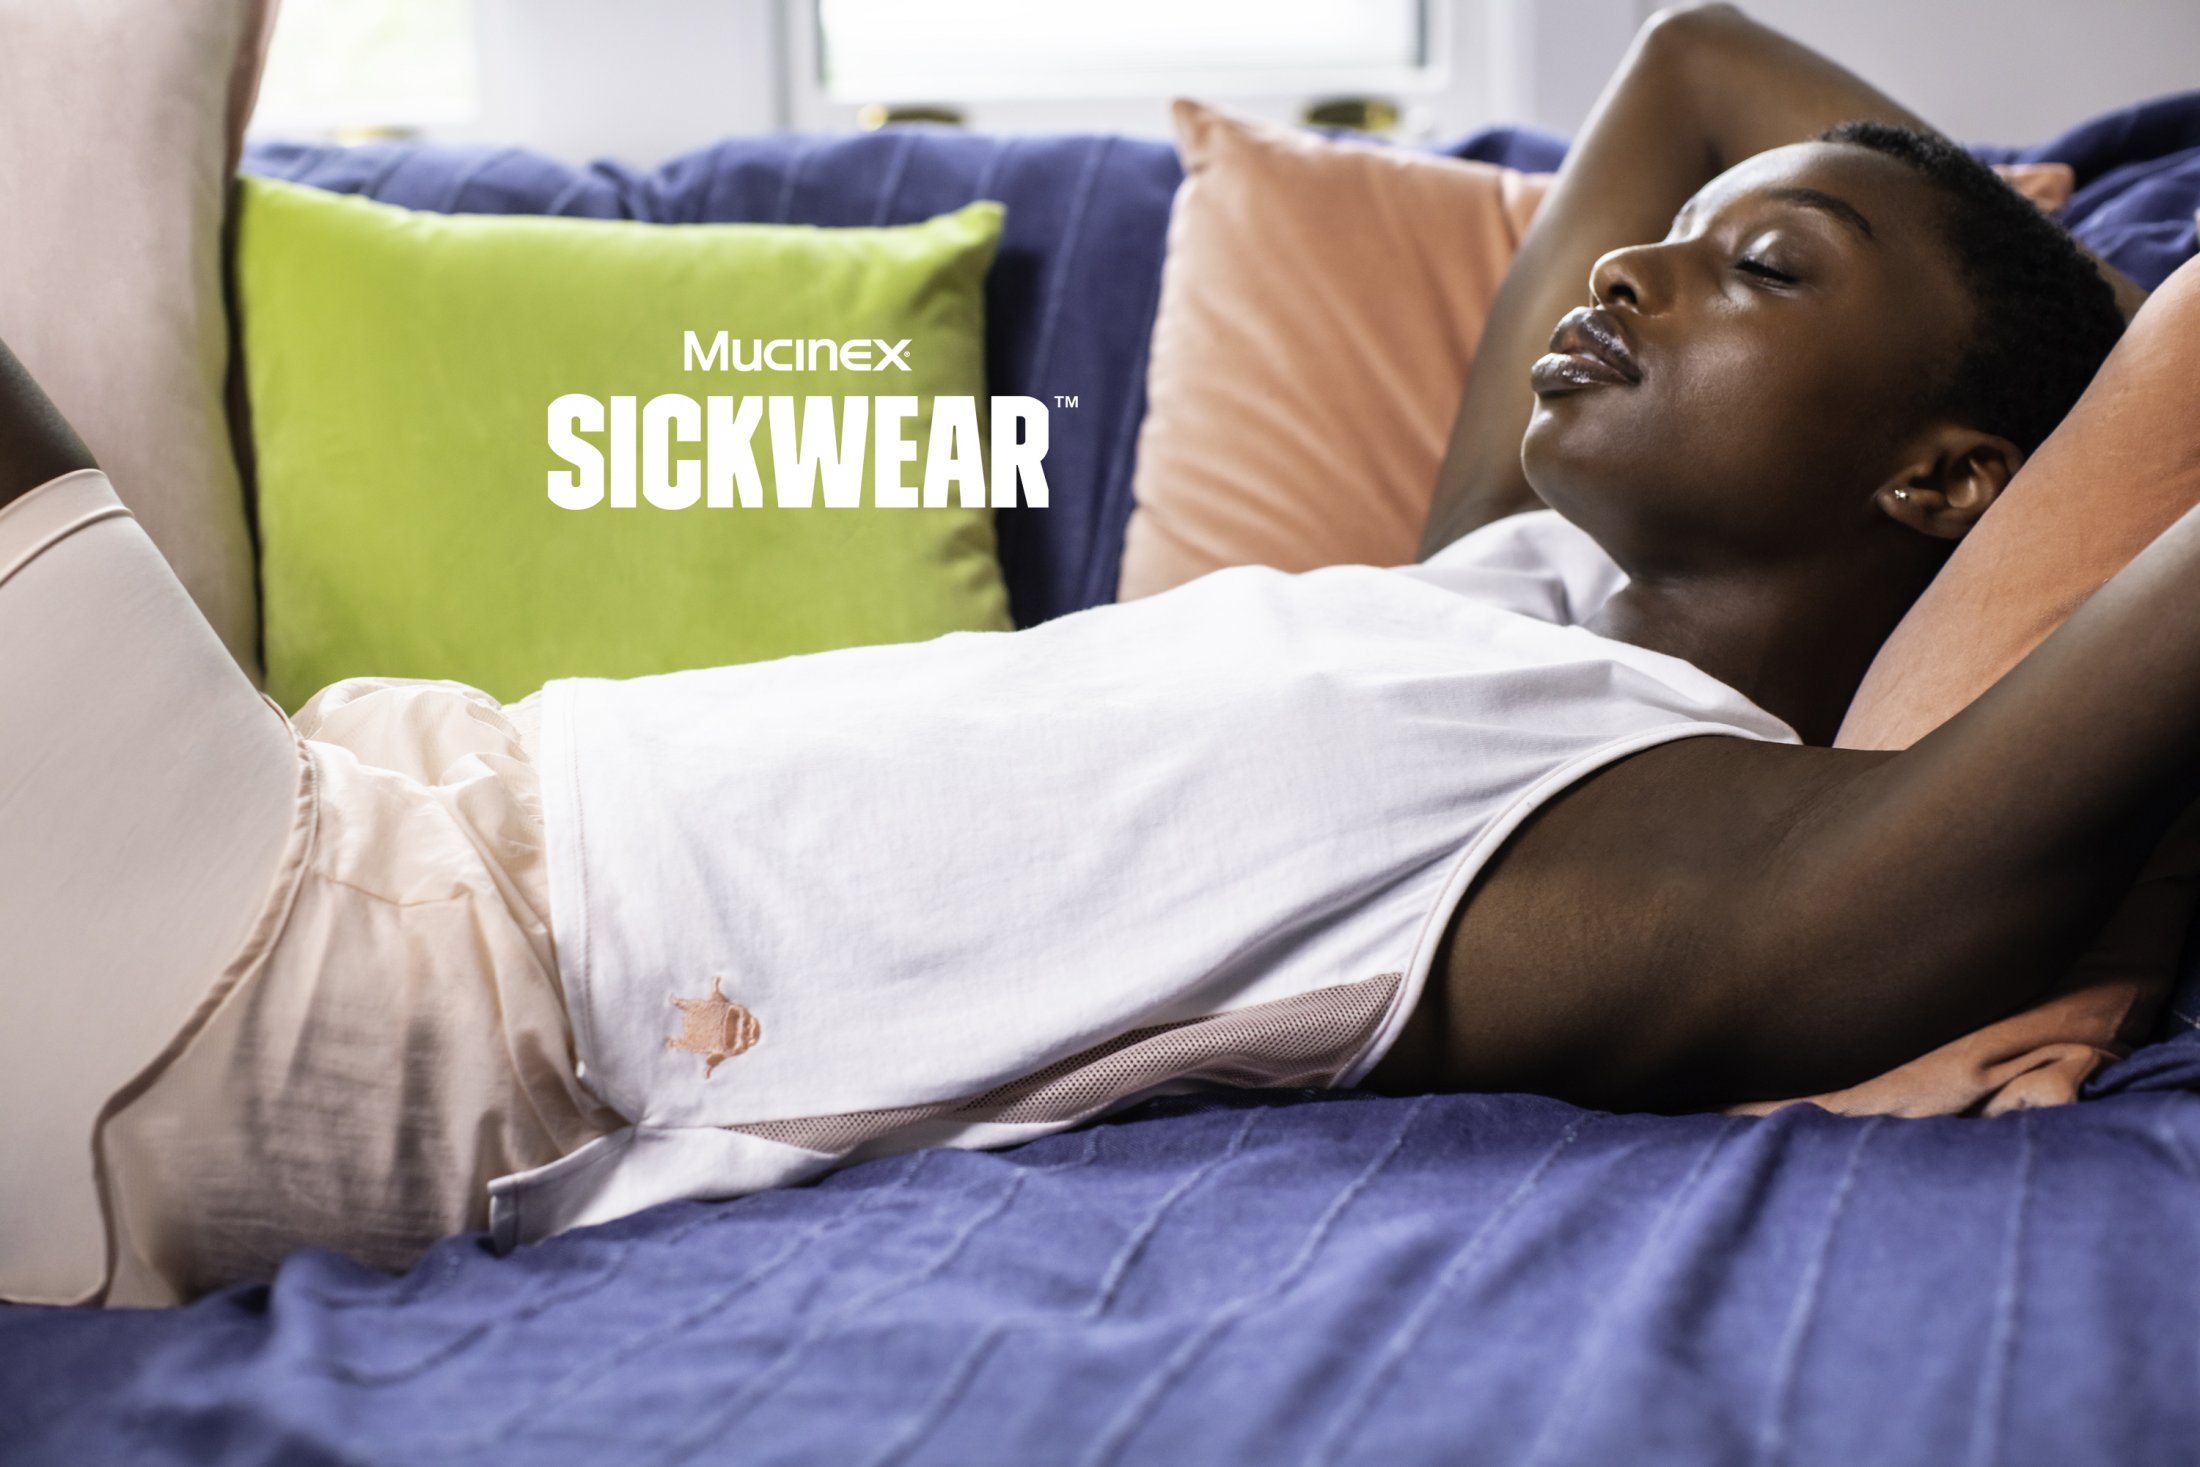 Thumbnail for Sickwear™ by Mucinex®